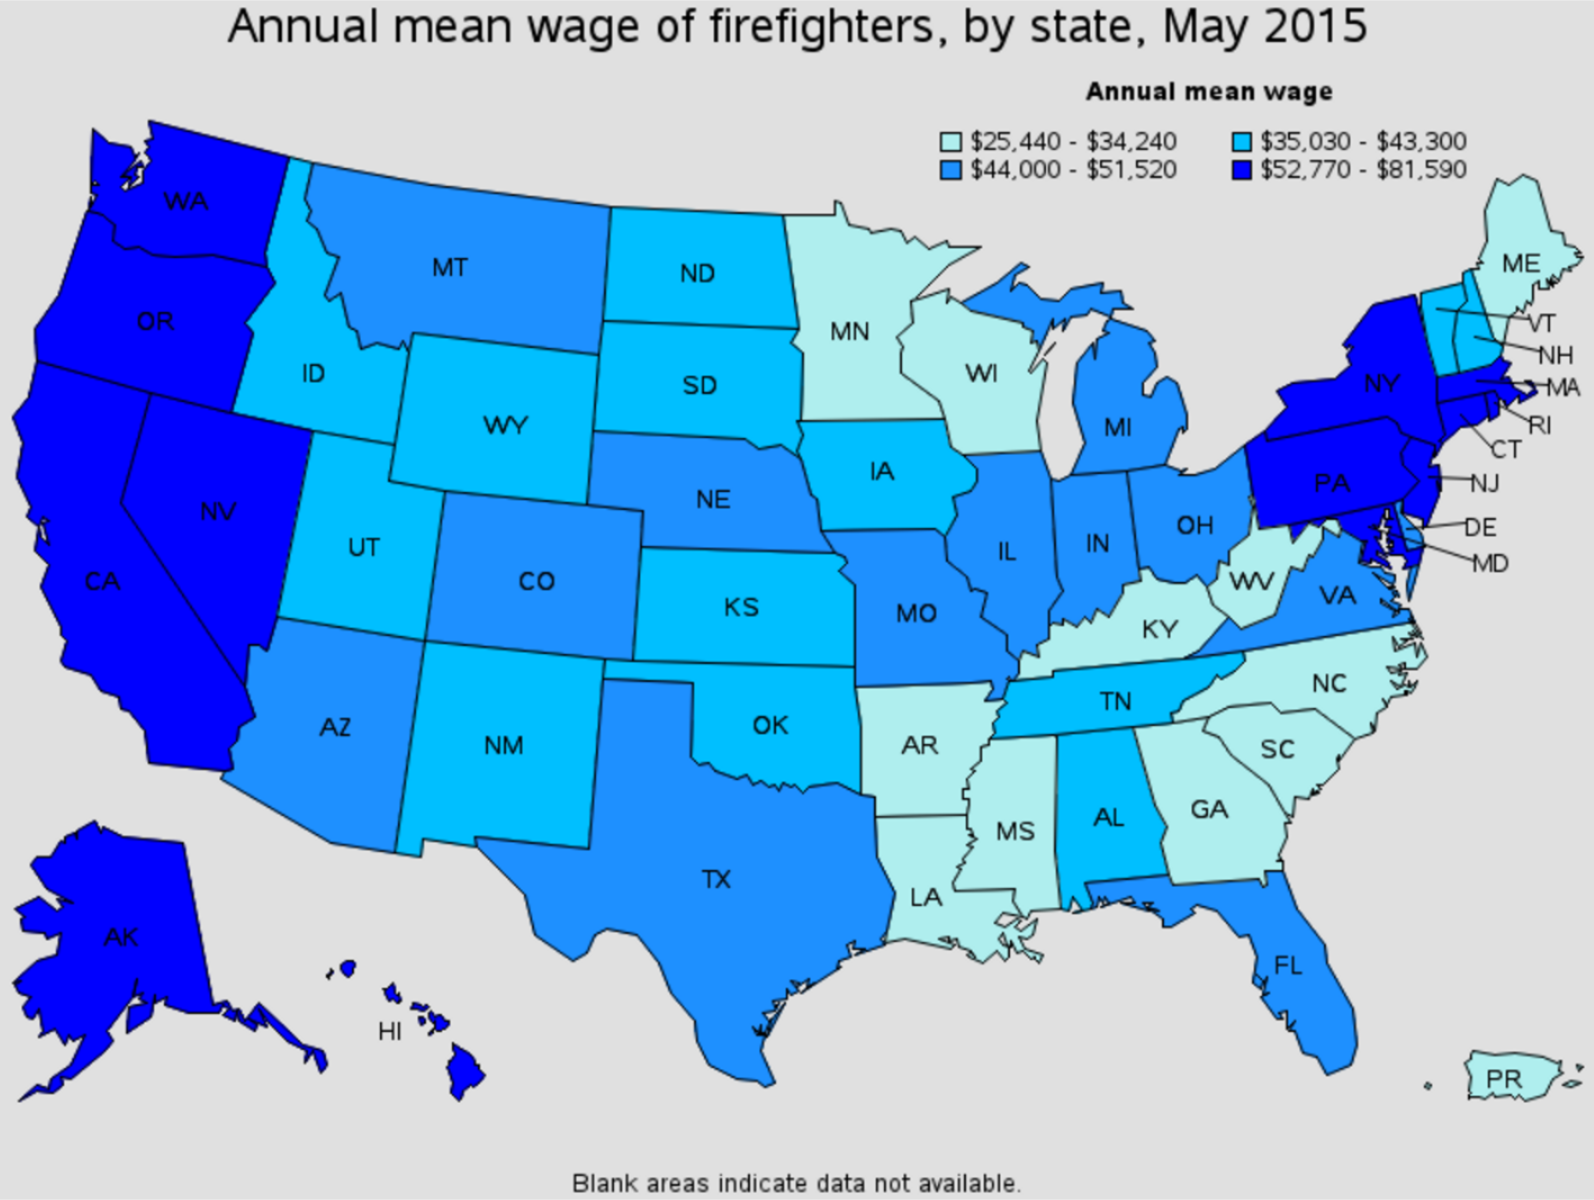 firefighter average salary by state Winooski Vermont